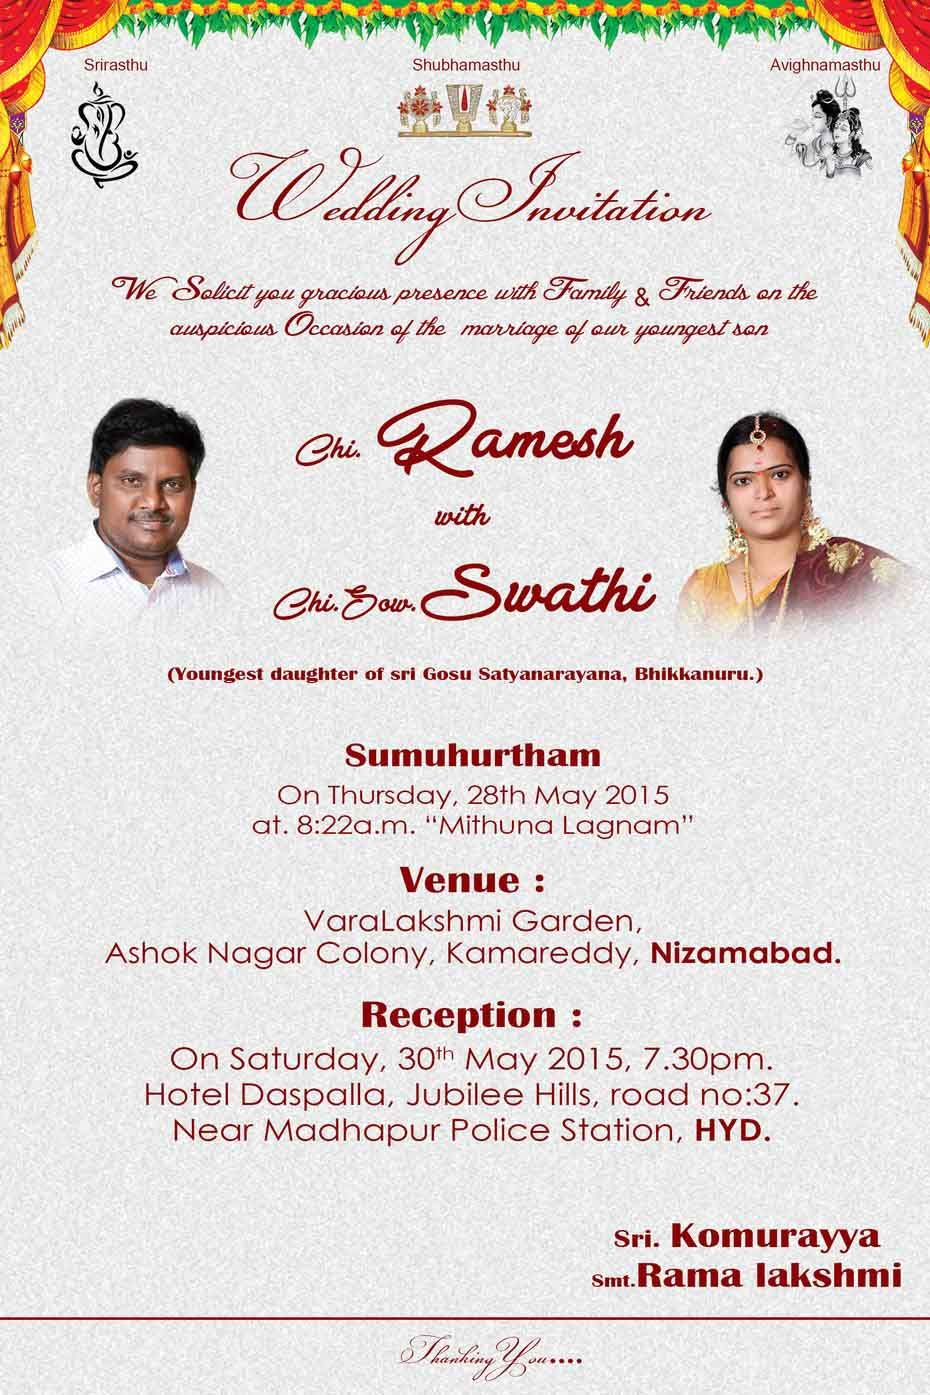 Thagubothu Ramesh S Wedding Invitation Card Marriage Invitation Card Wedding Invitation Cards Marriage Invitations